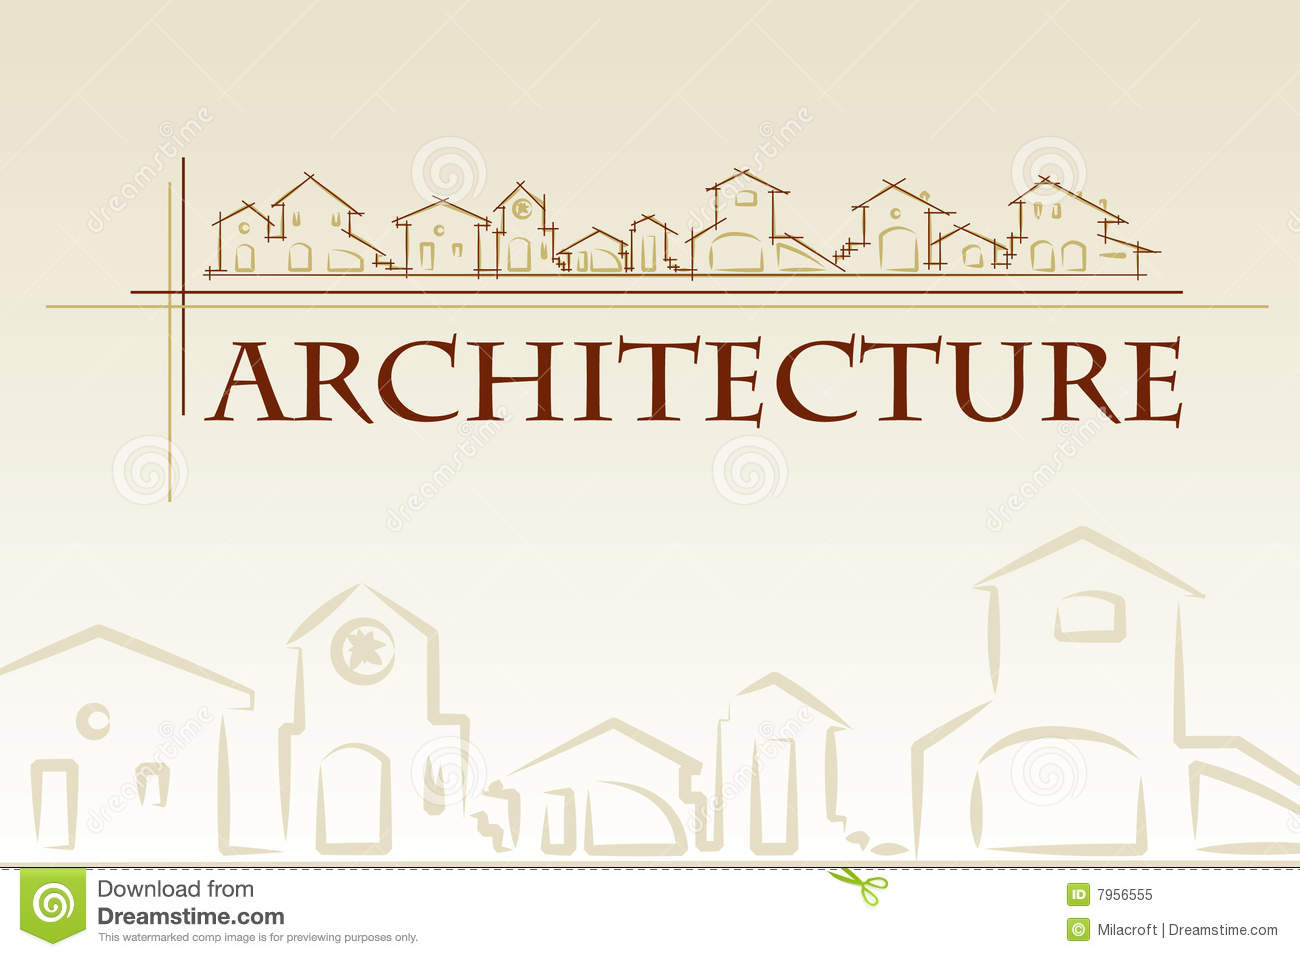 Architecture   Construction Company.